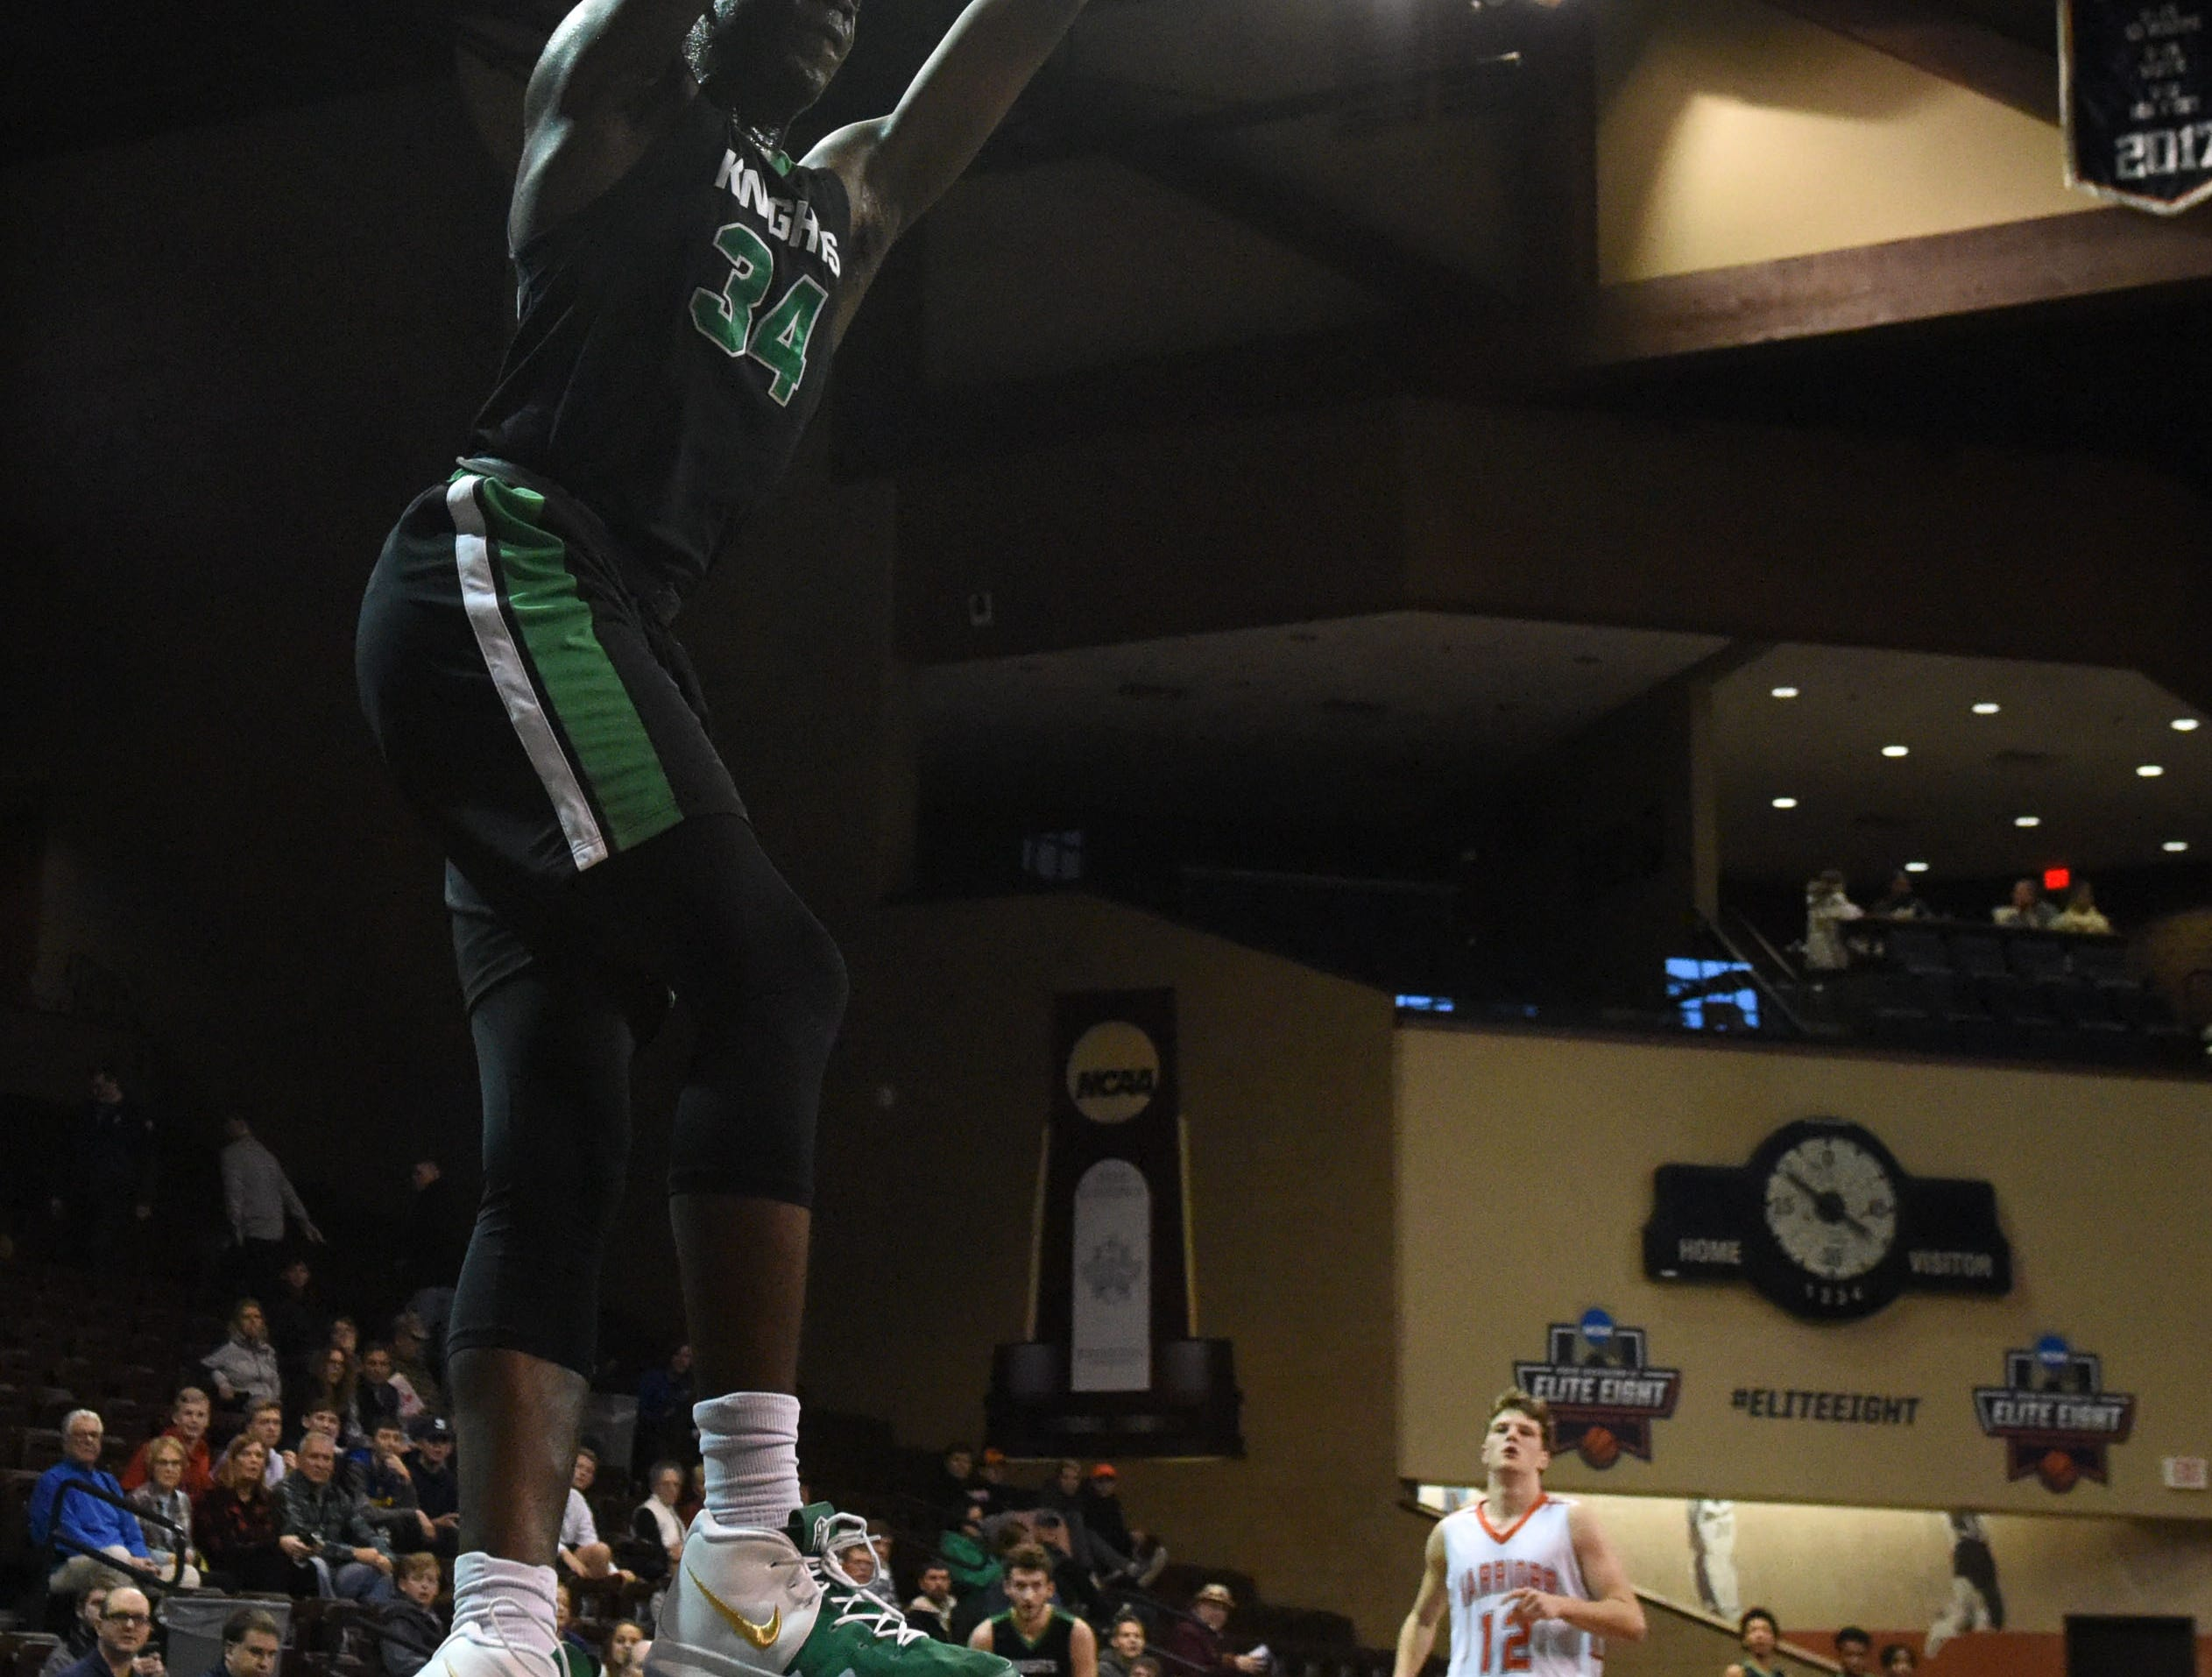 Dominican's Alex Antetokounmpo (34) dunks the ball during a game against Washington at the Hoop City Classic at the Sanford Pentagon in Sioux Falls, S.D., Saturday, Dec. 29, 2018.